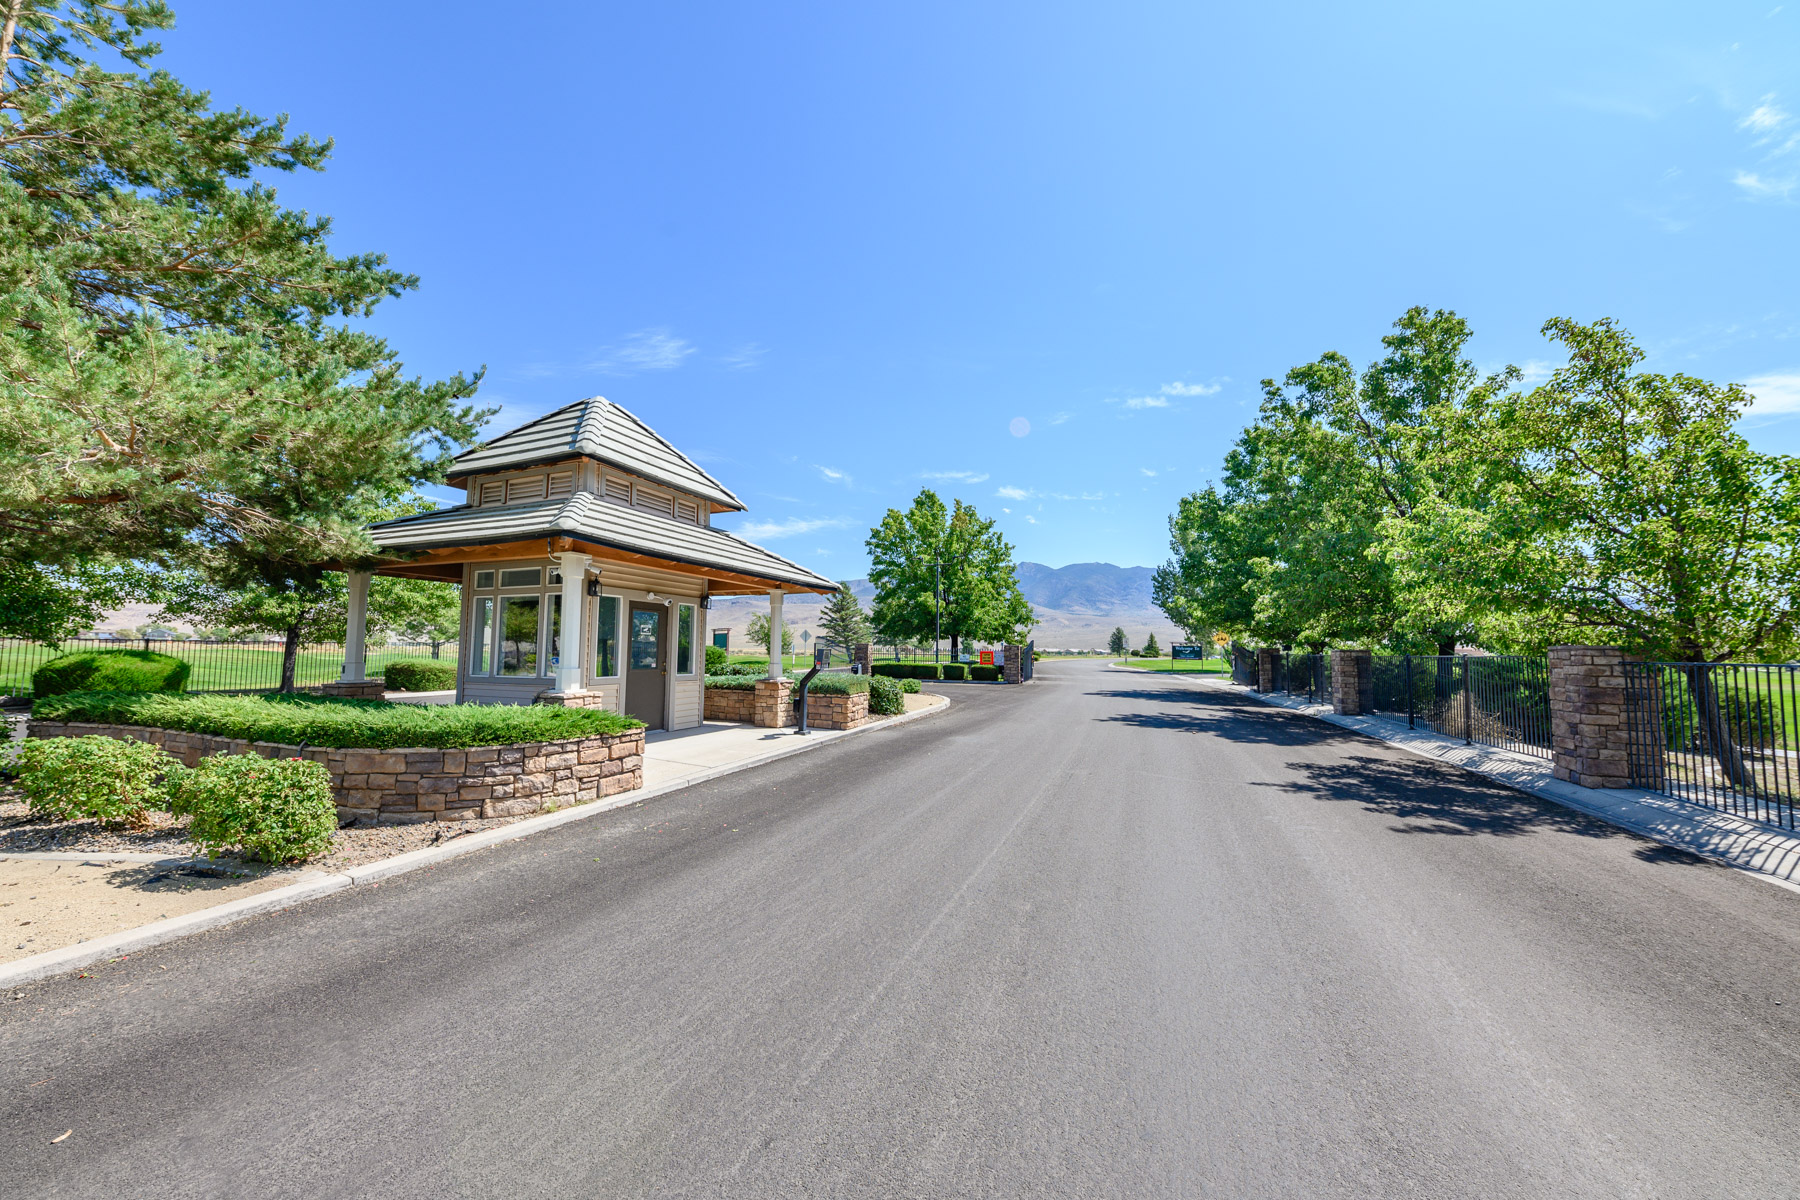 Additional photo for property listing at 379 Royal Troon Drive, Dayton, Nevada 379 Royal Troon Drive Dayton, Nevada 89403 United States